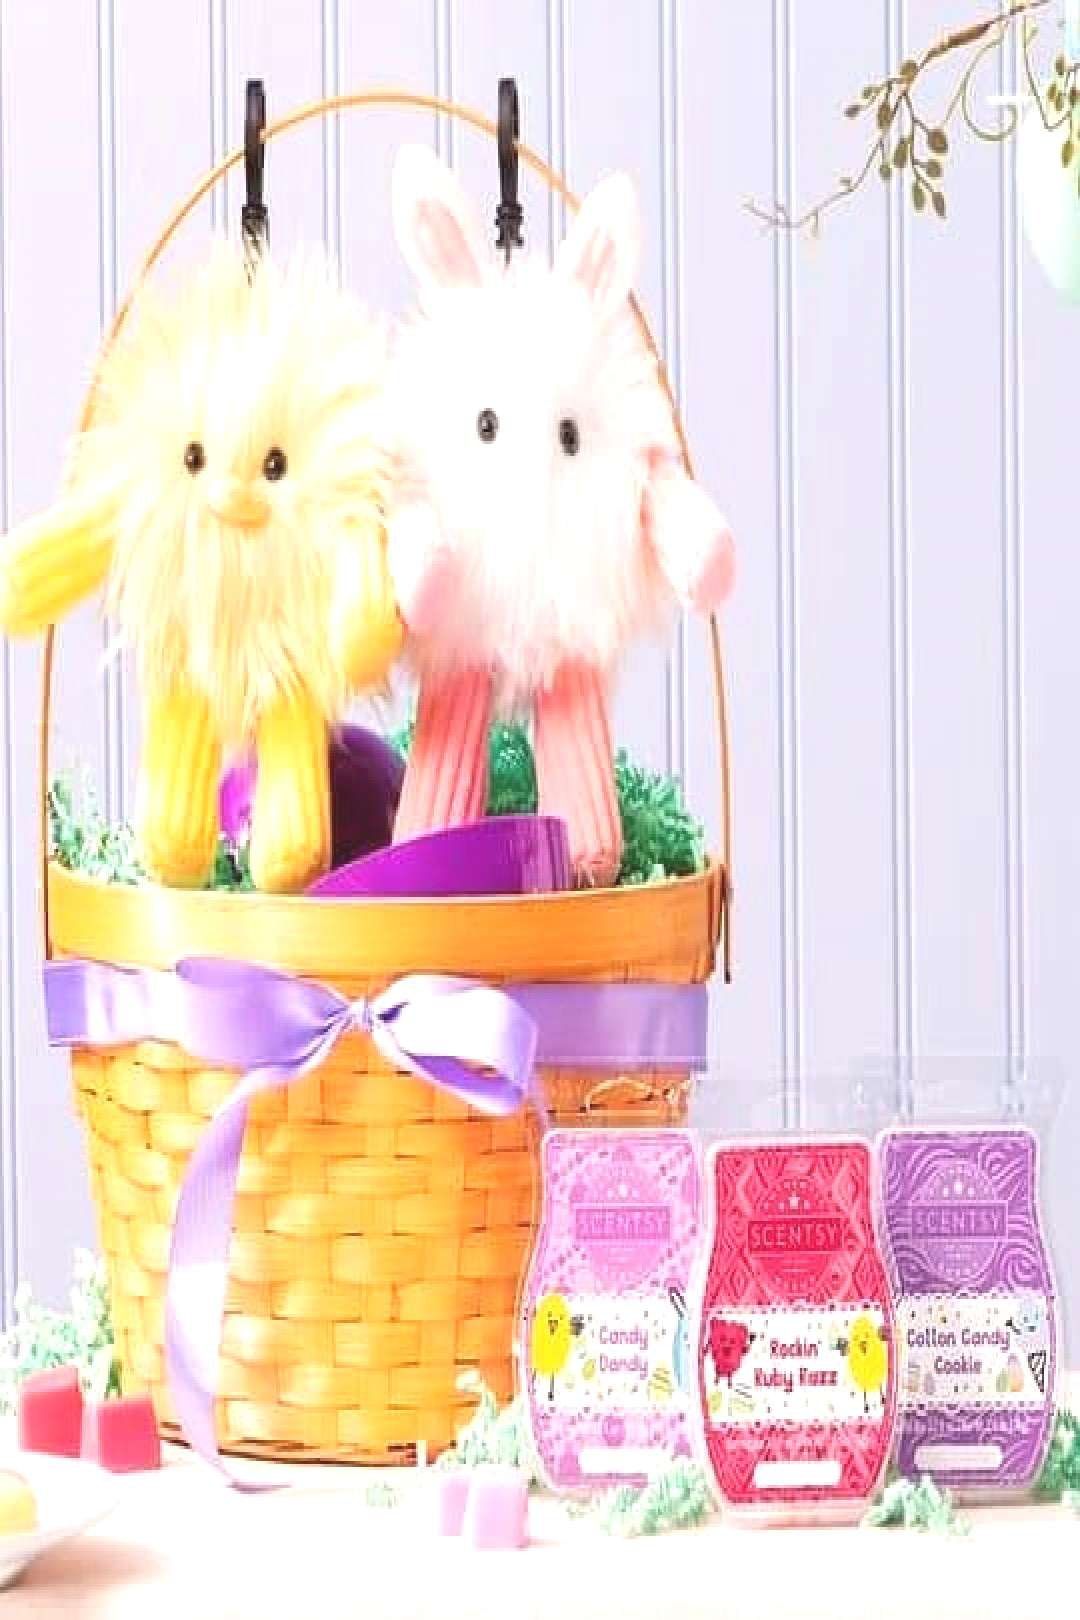 Photo by Scentsy By Toni on March 14, 2020.